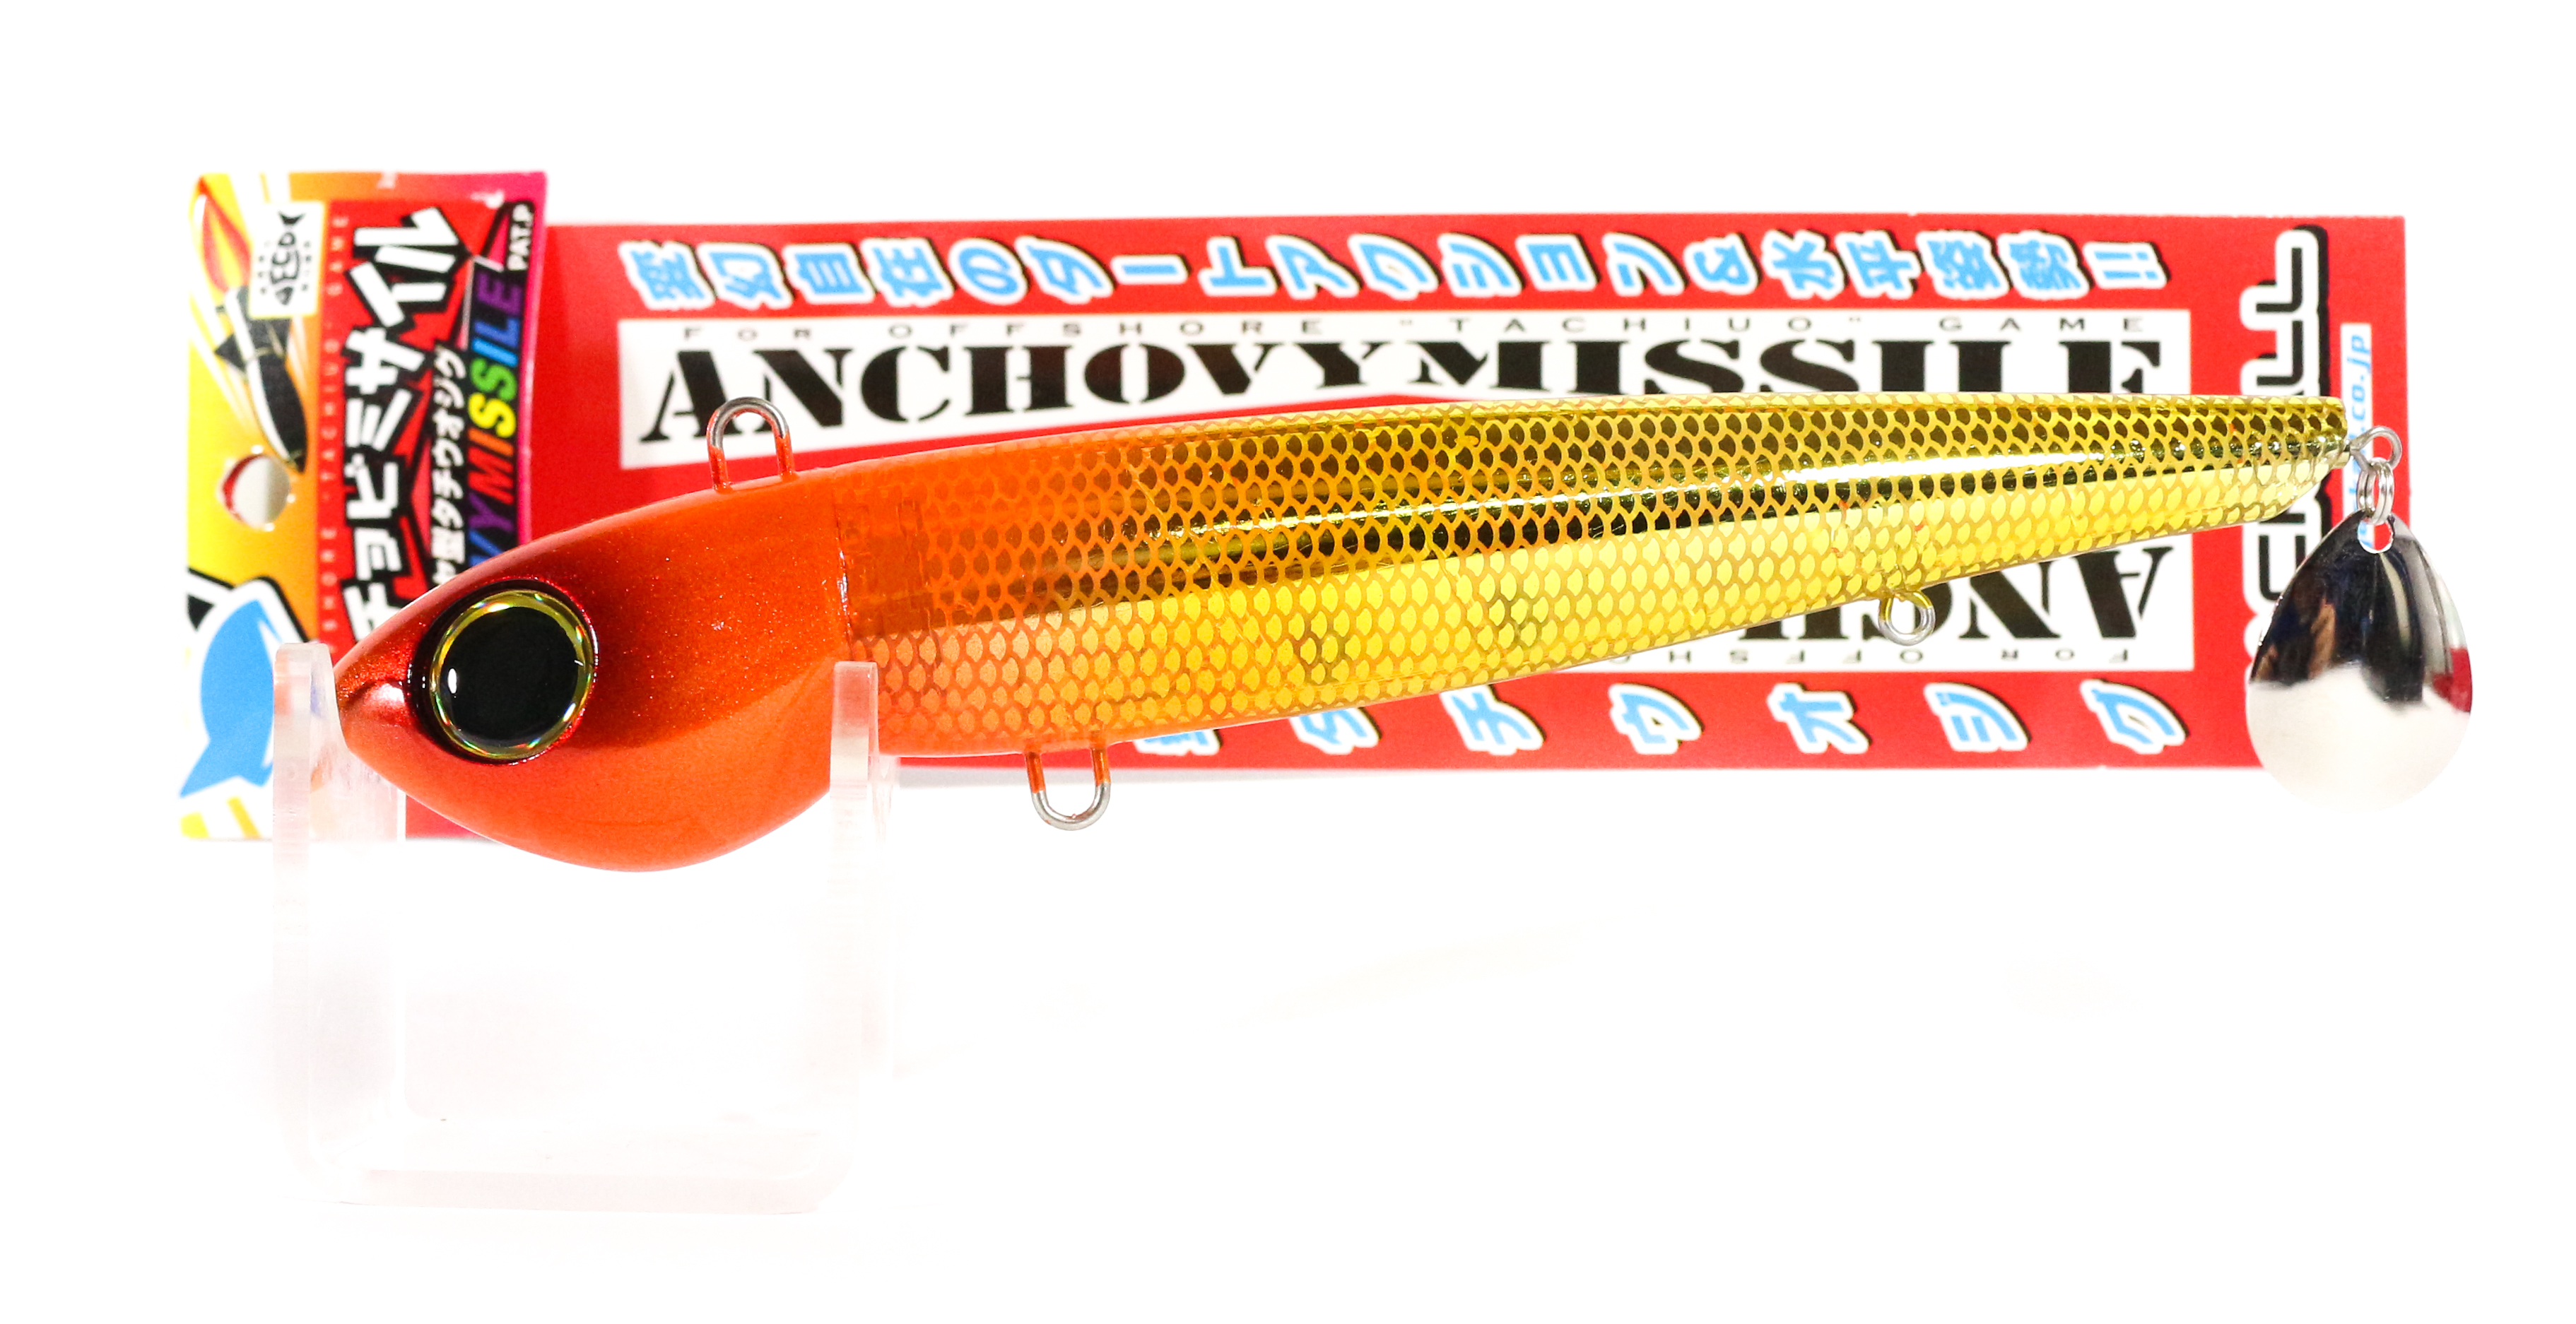 Jackall Anchovy Missile RattleShiki Jig Lure 190 grams Orange Gold (5375)